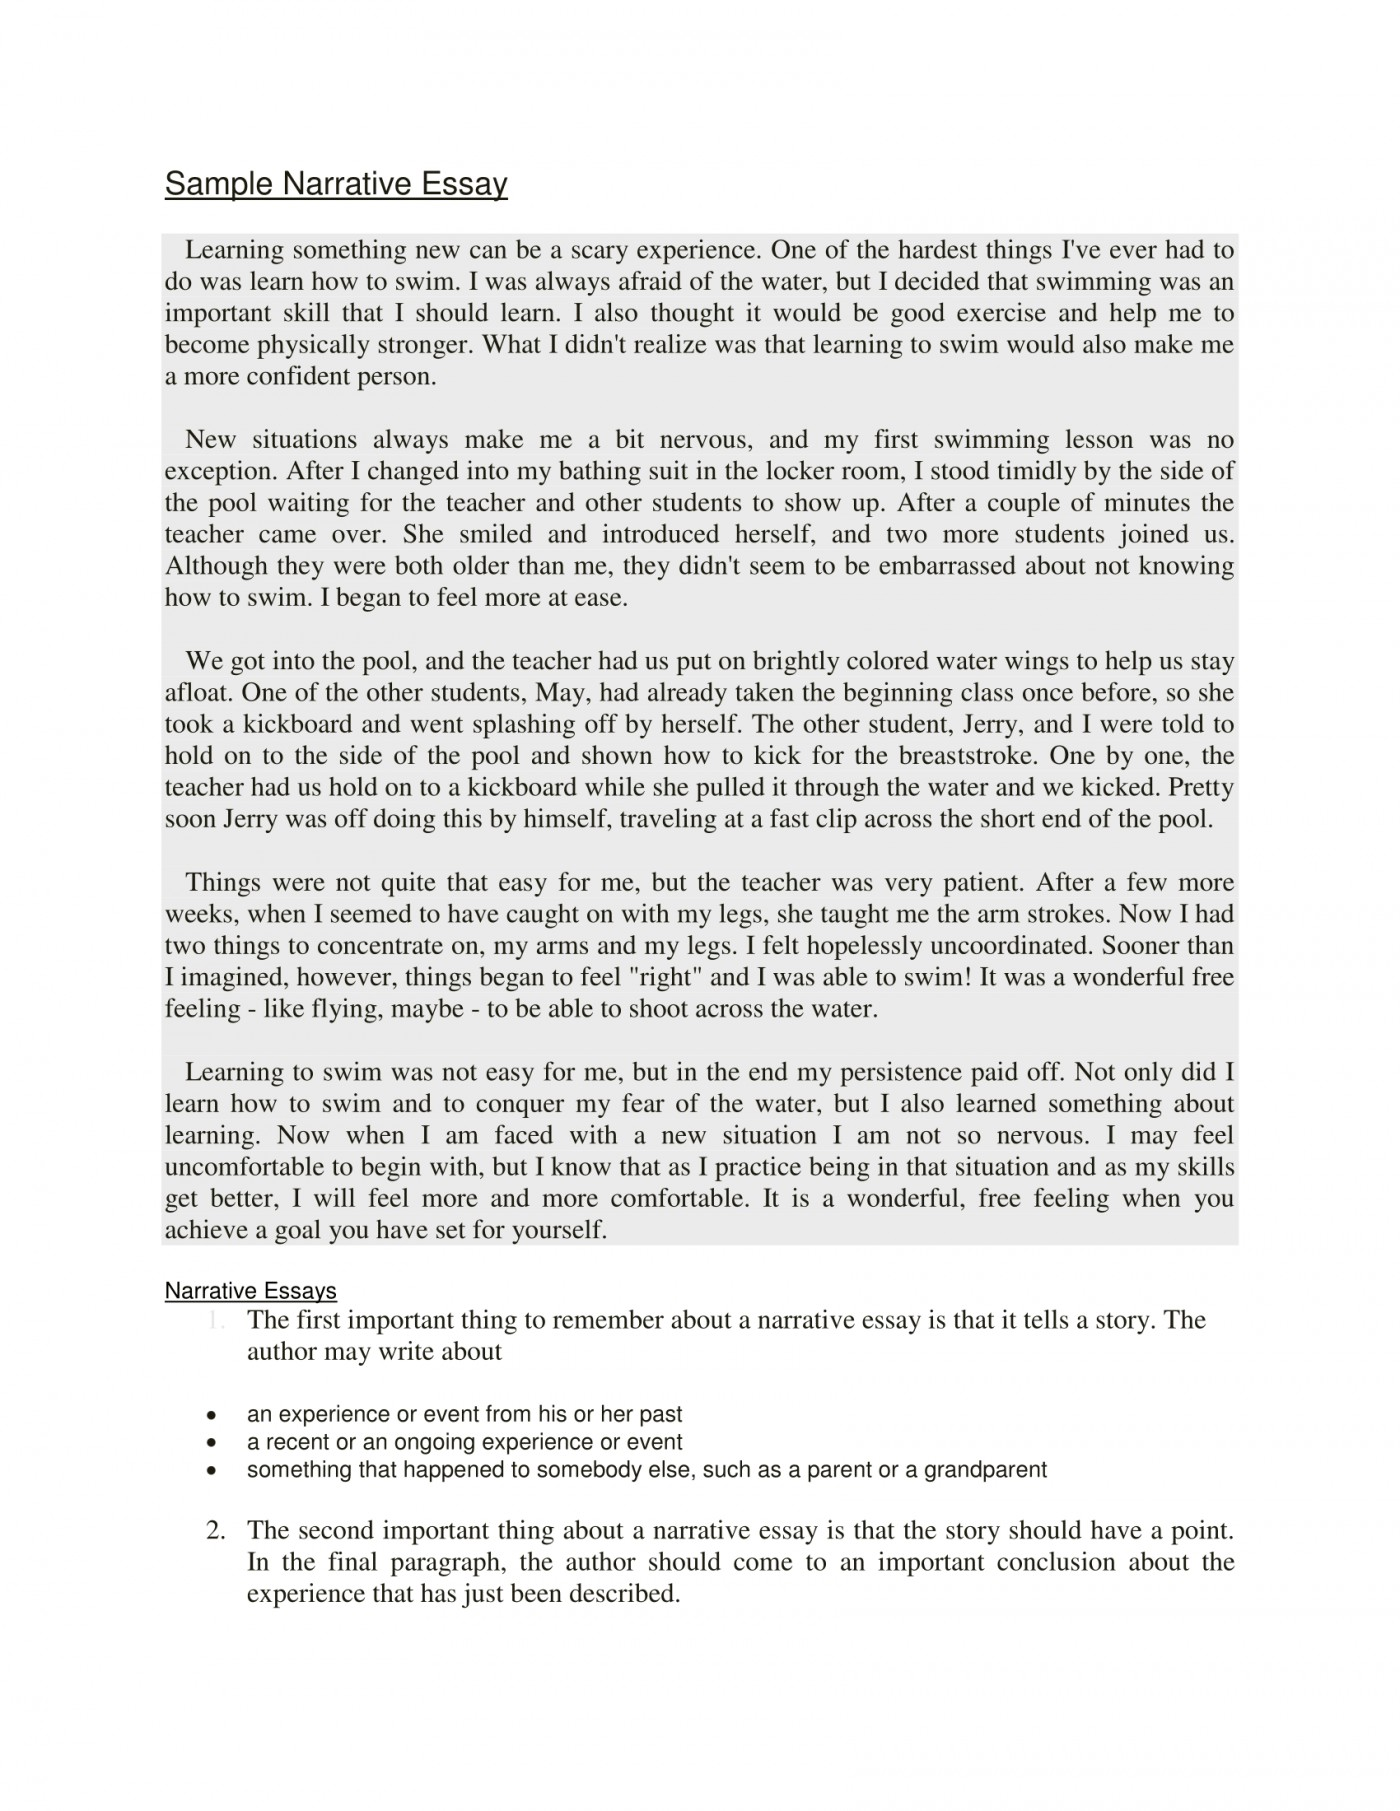 008 Example Of Narrative Essay Beneficial Examples Samples Writing Ppt Brown Achievement The Martial Ars Competit About Being Judged Quizlet 4th Grade Someone Else Step Imposing A Introduction Format Love 1400